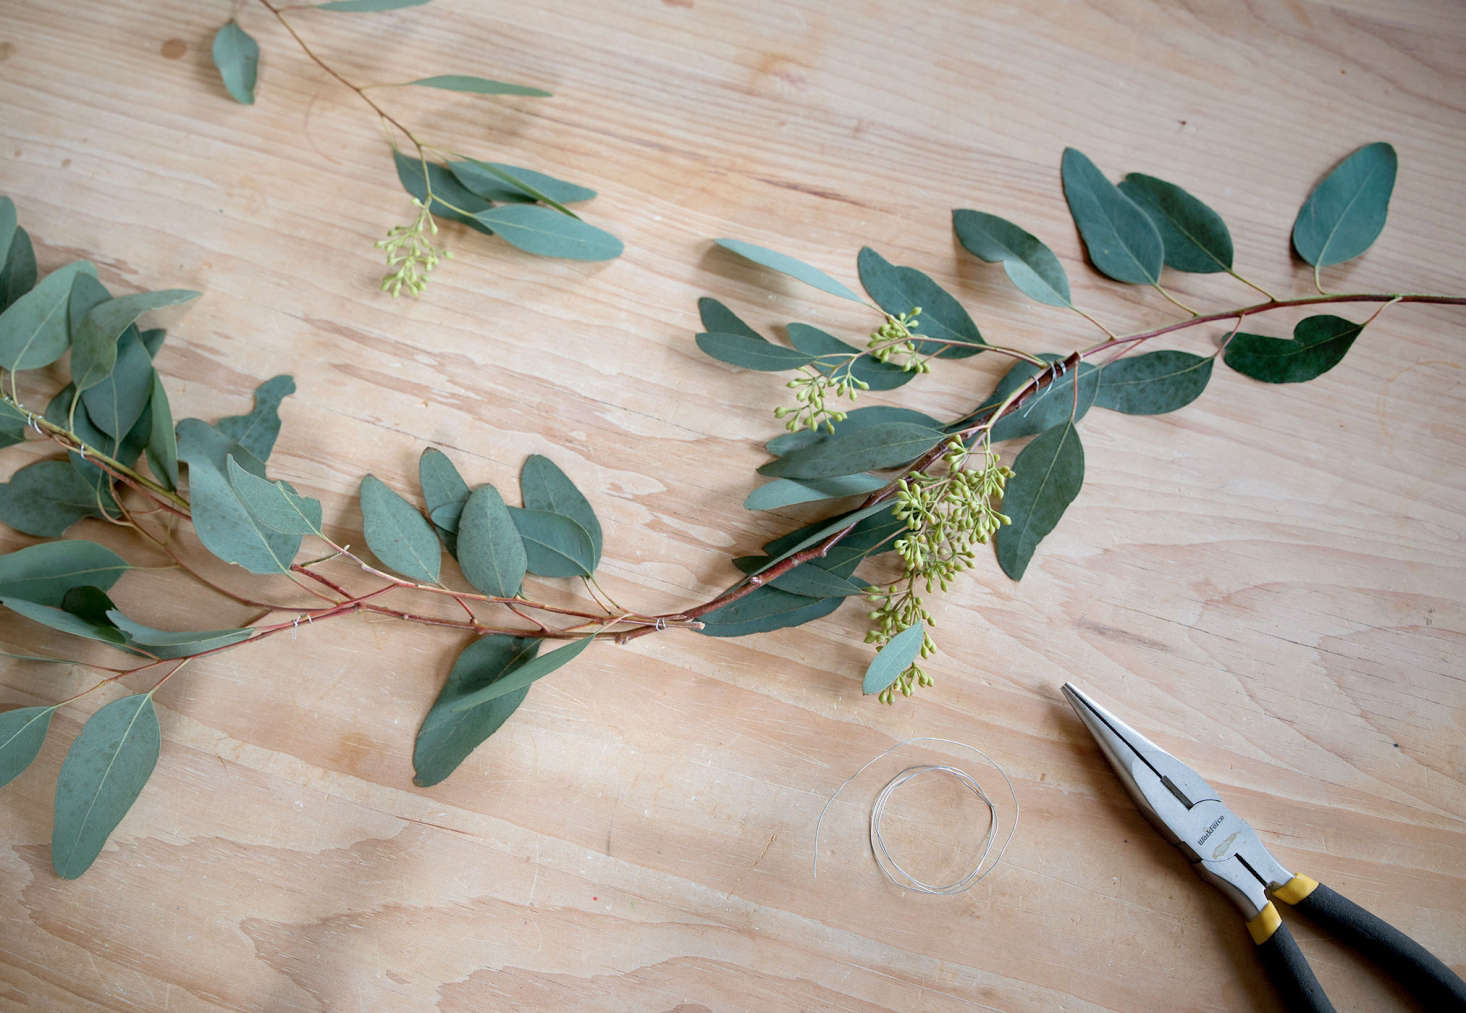 I have to admit, I picked up the $5 seeded eucalyptus branches from my local Whole Foods with the idea of incorporating them into a more lush display, but my minimalist tendencies won out. Holding up one branch, I noted its graceful curving bow and thought, &#8